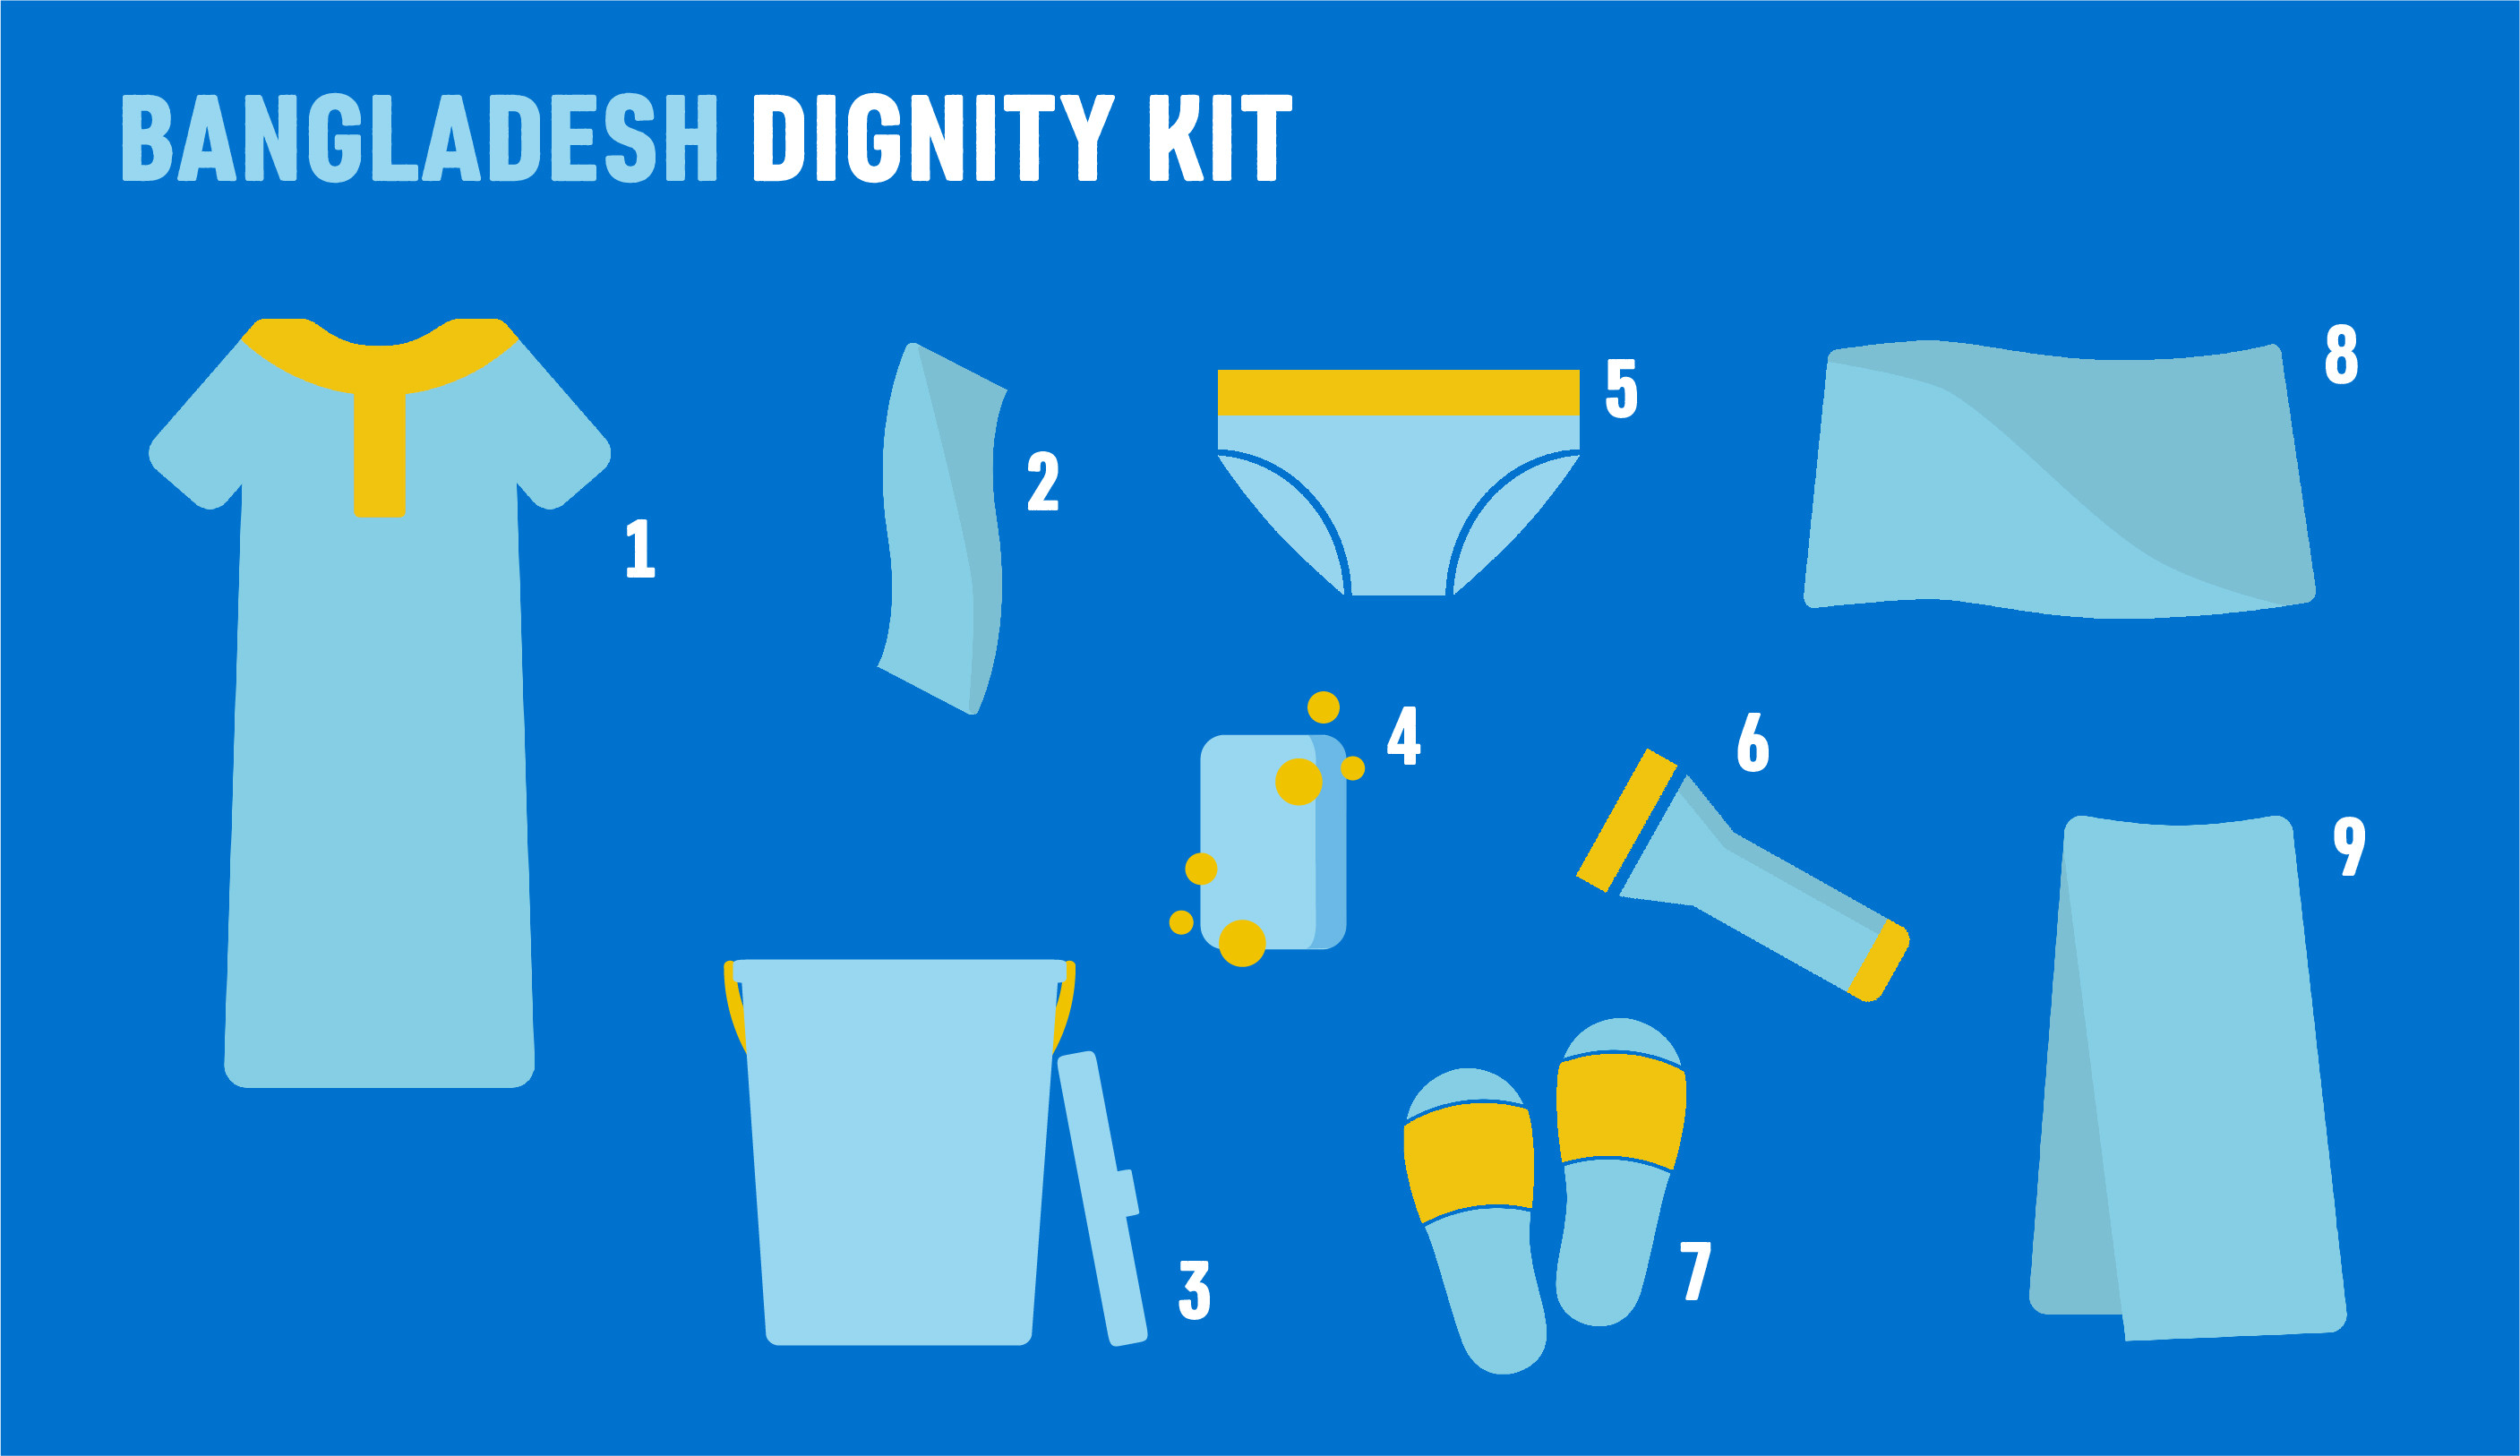 An infographic showing the contents of a dignity kit